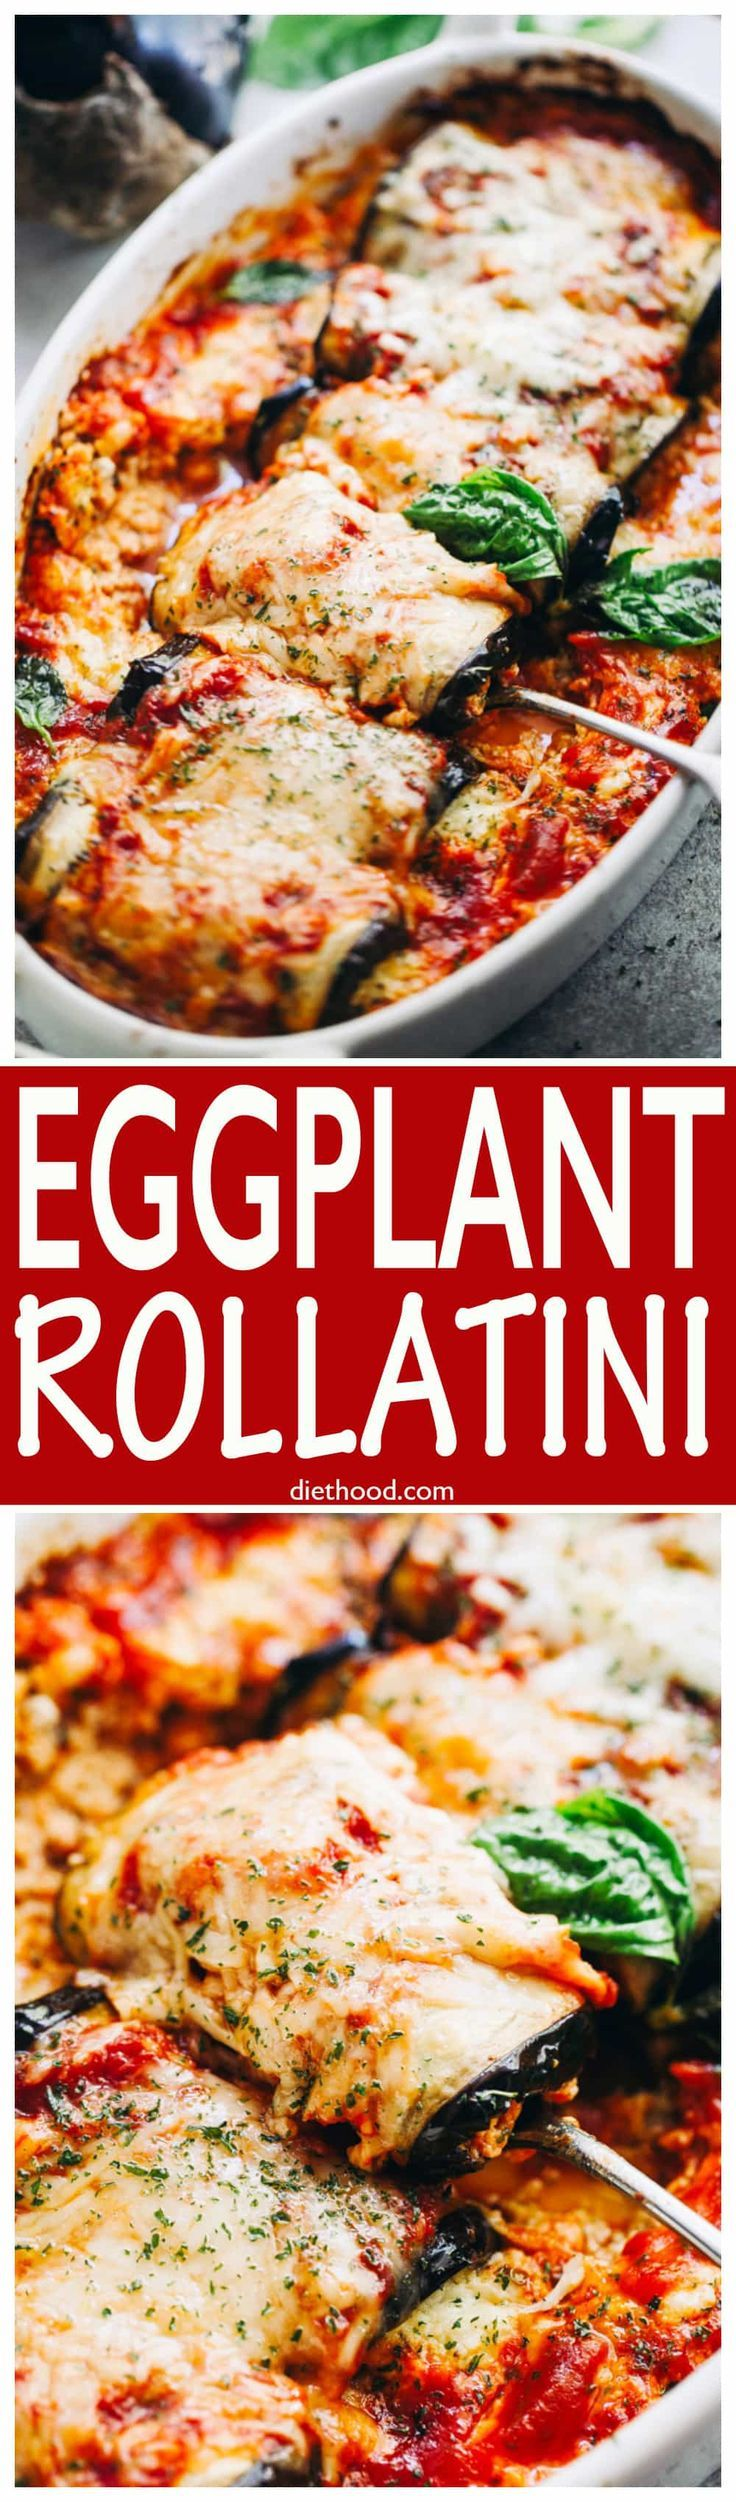 Eggplant Rollatini - Eggplant rollups stuffed with a cheesy ricotta blend, and baked in a delicious marinara sauce. via @diethood